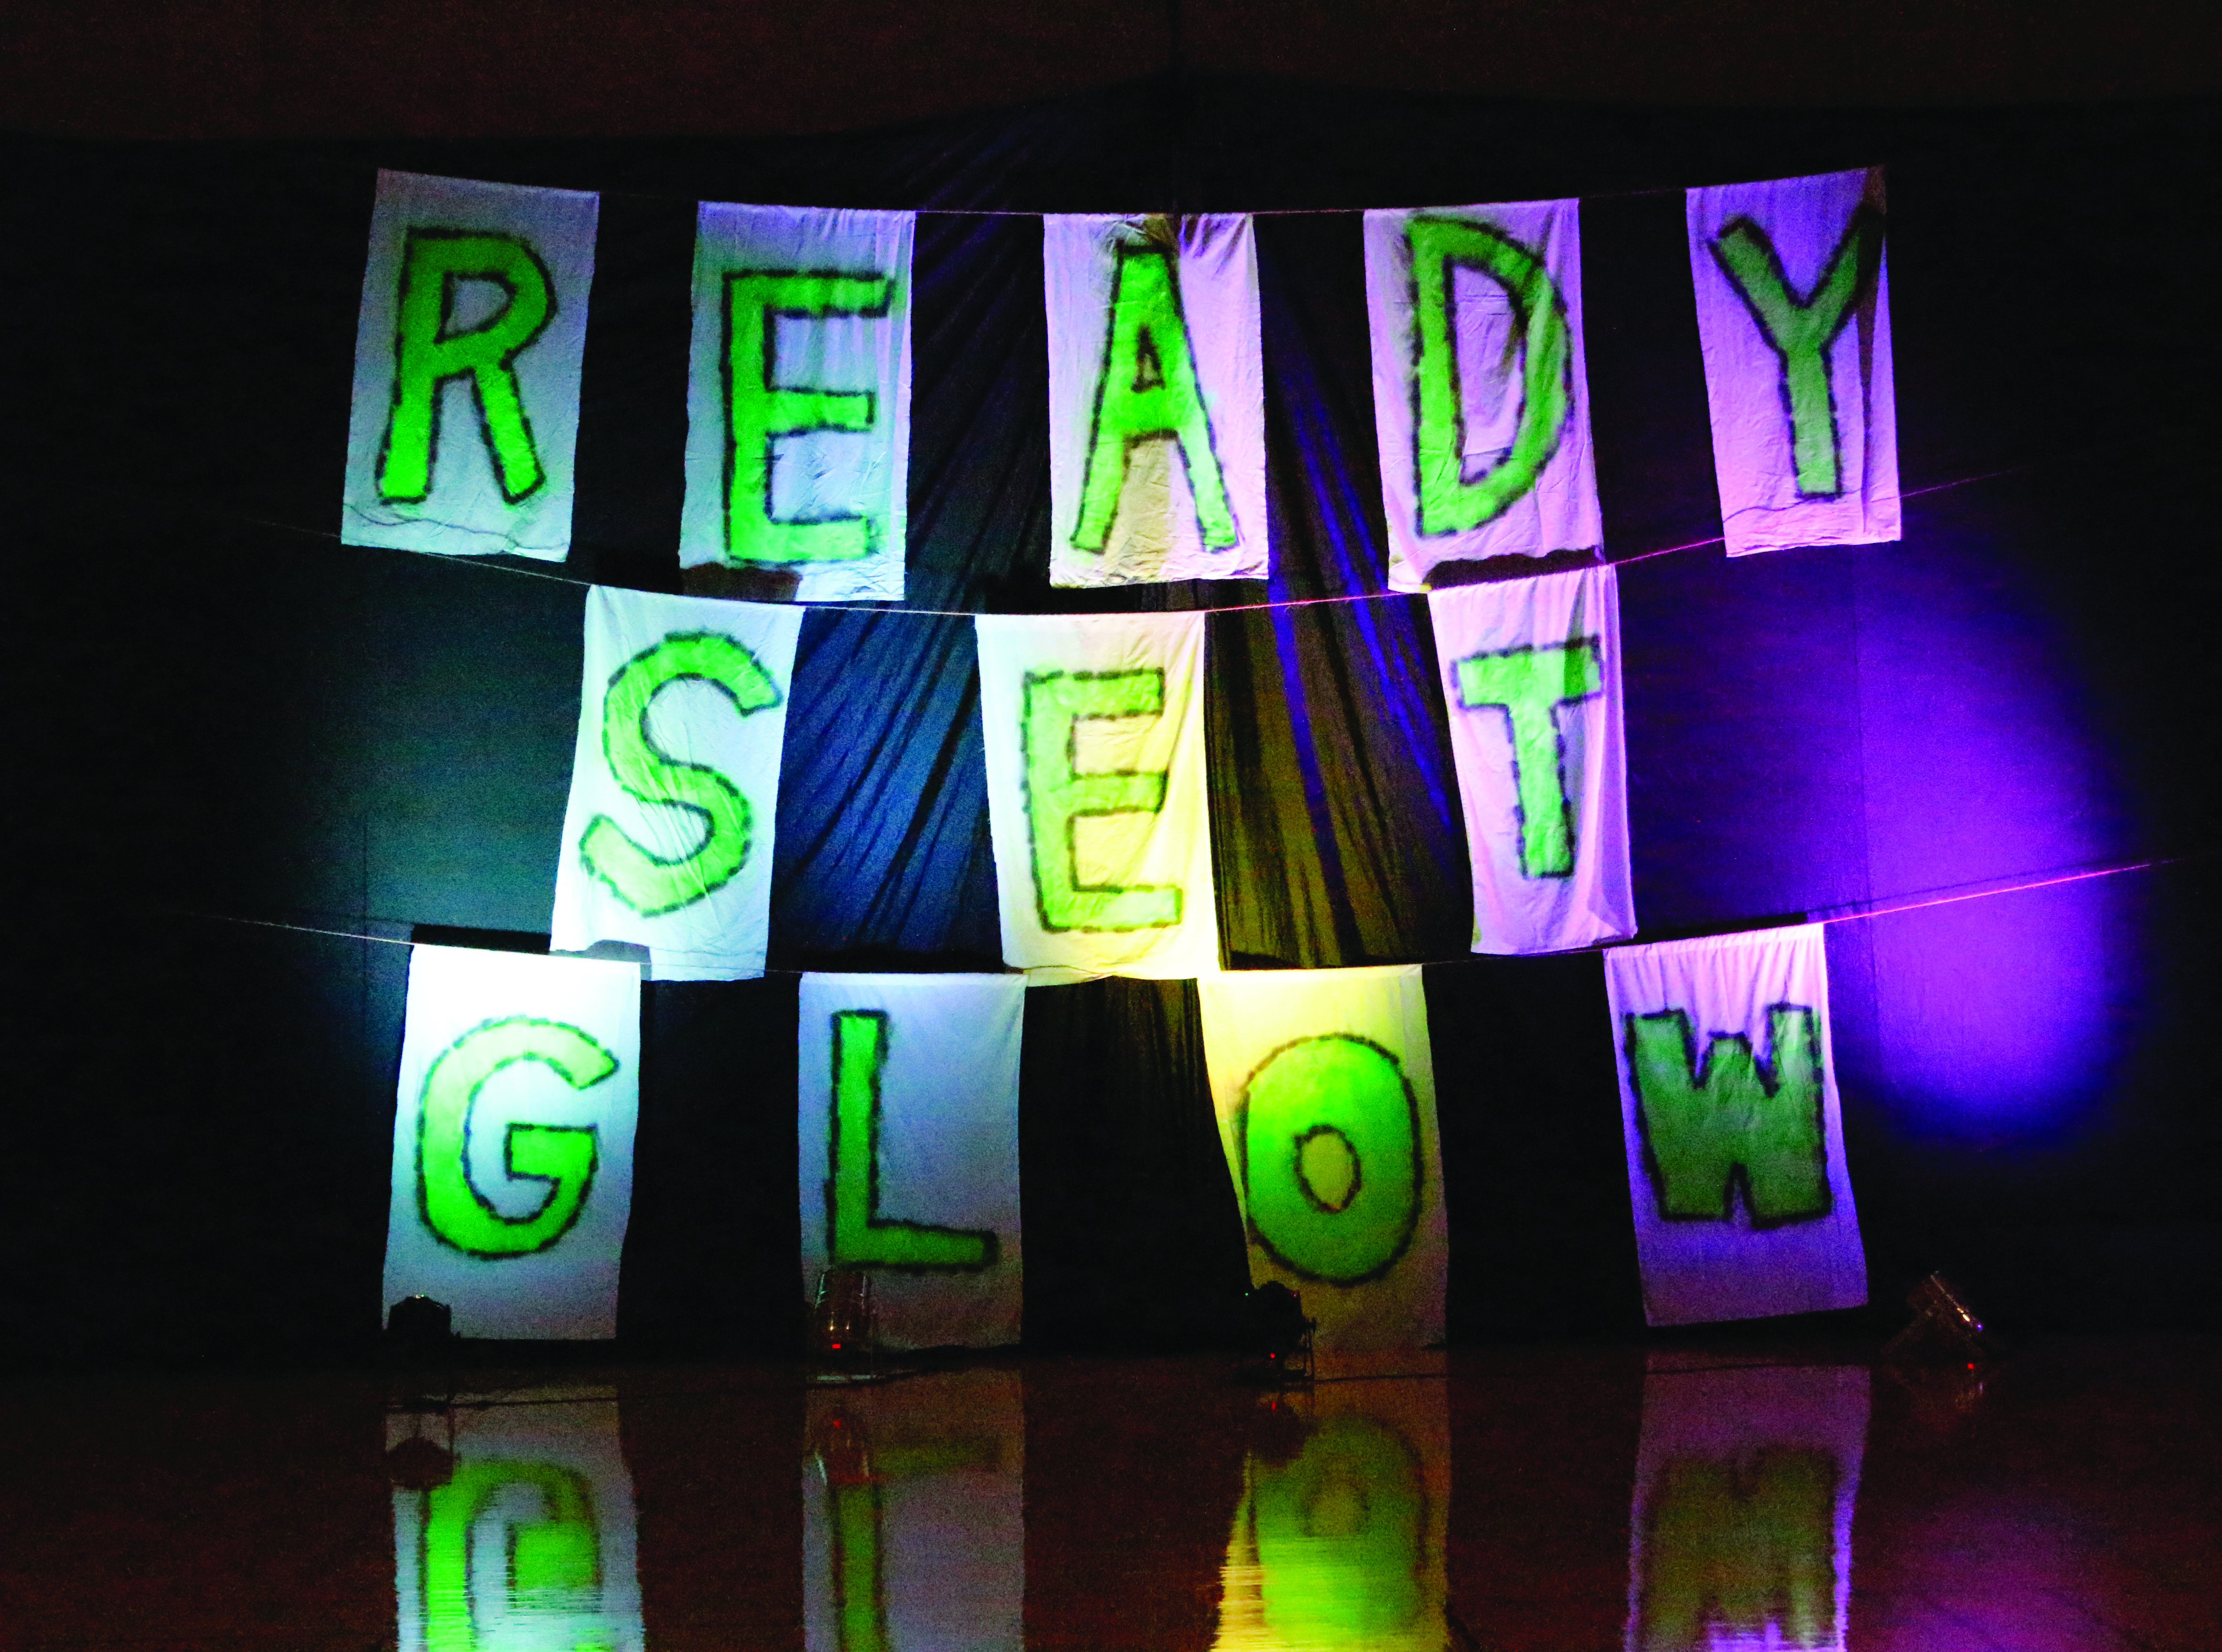 """The Integrated Business Core kicks off the weekend at Cedarville with """"Ready, Set, Glow"""". The event, held Saturday, Oct. 22 from 7:30 p.m. to almost midnight, featured campus golf, bubble soccer and a DTR show, all with a glowing theme."""